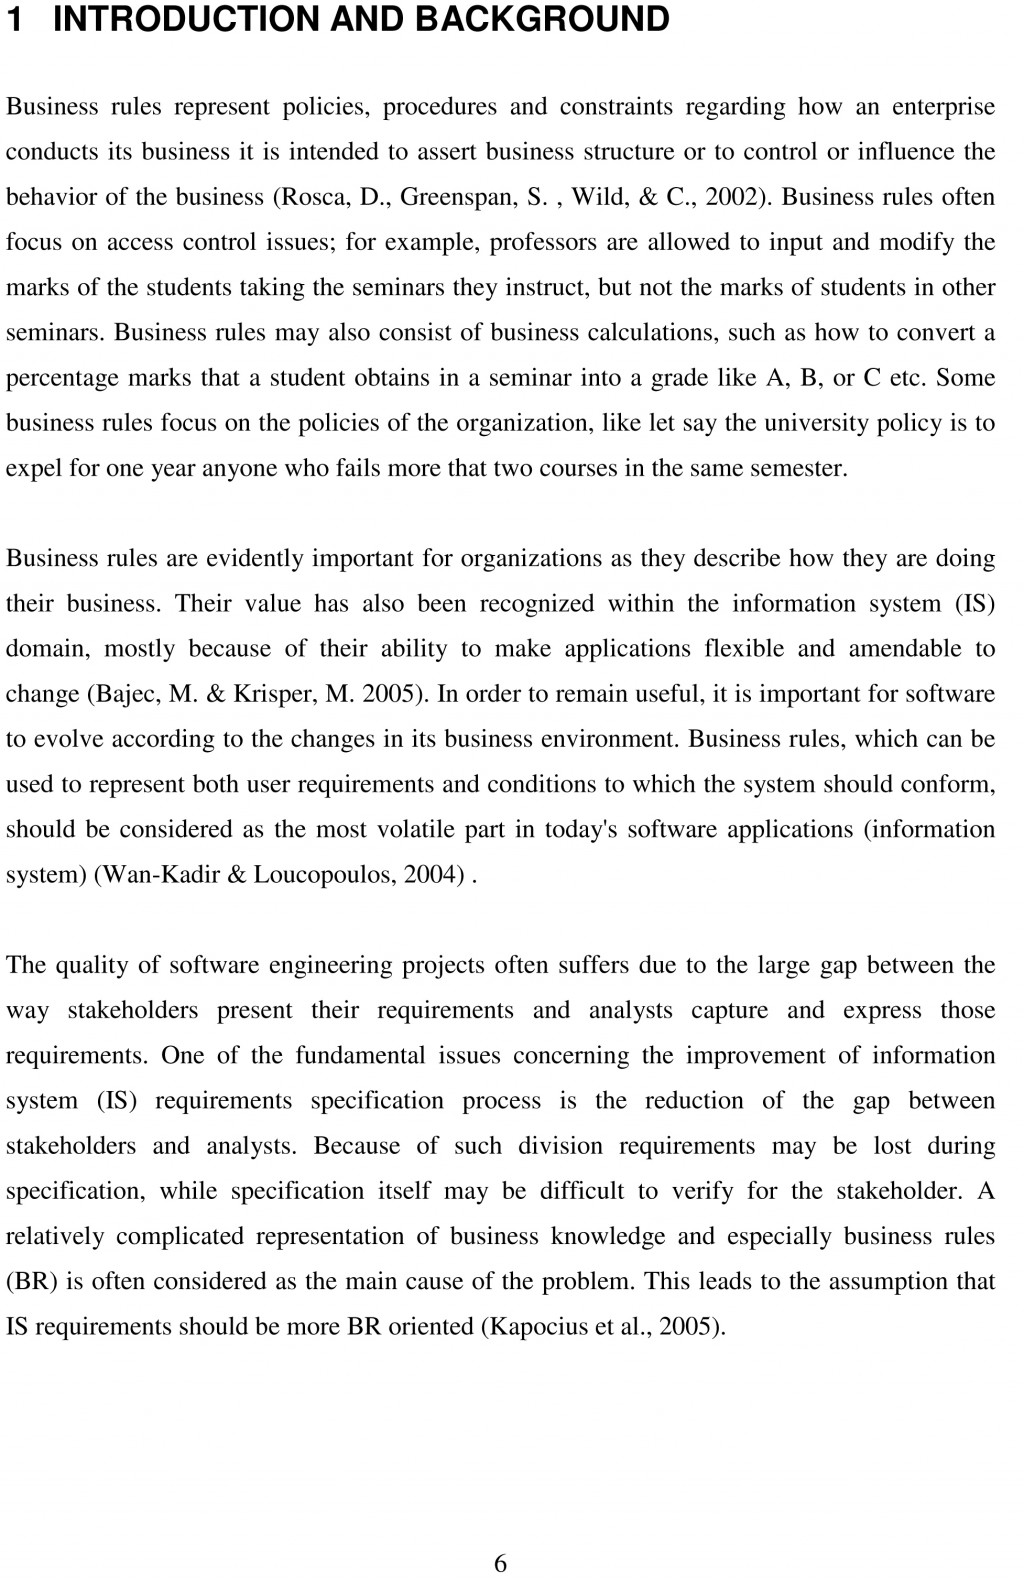 014 Thesis Free Sample1 Research Paper Example Of Simple Fantastic A Pdf Large